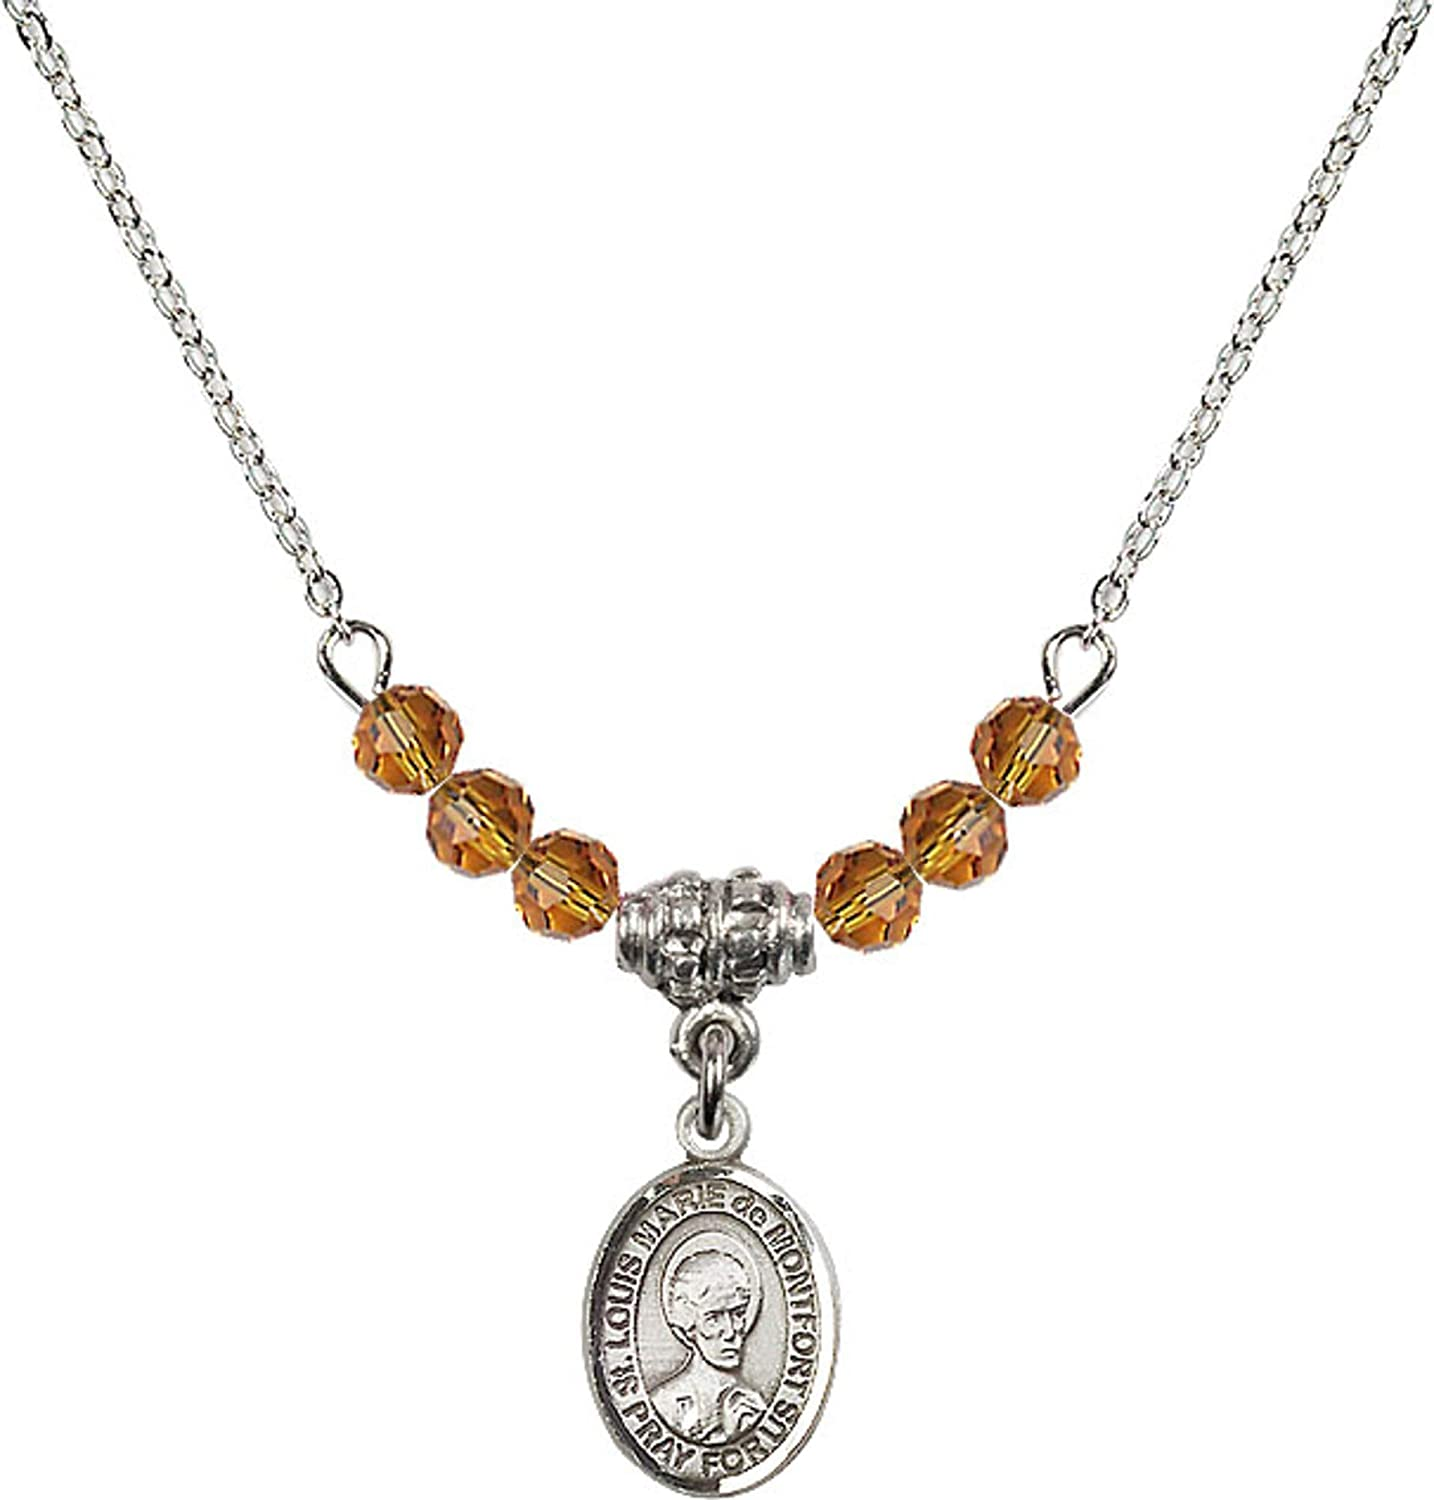 Bonyak Jewelry 18 Inch Rhodium Plated Necklace w// 4mm Yellow November Birth Month Stone Beads and Saint Louis Marie de Montfort Charm